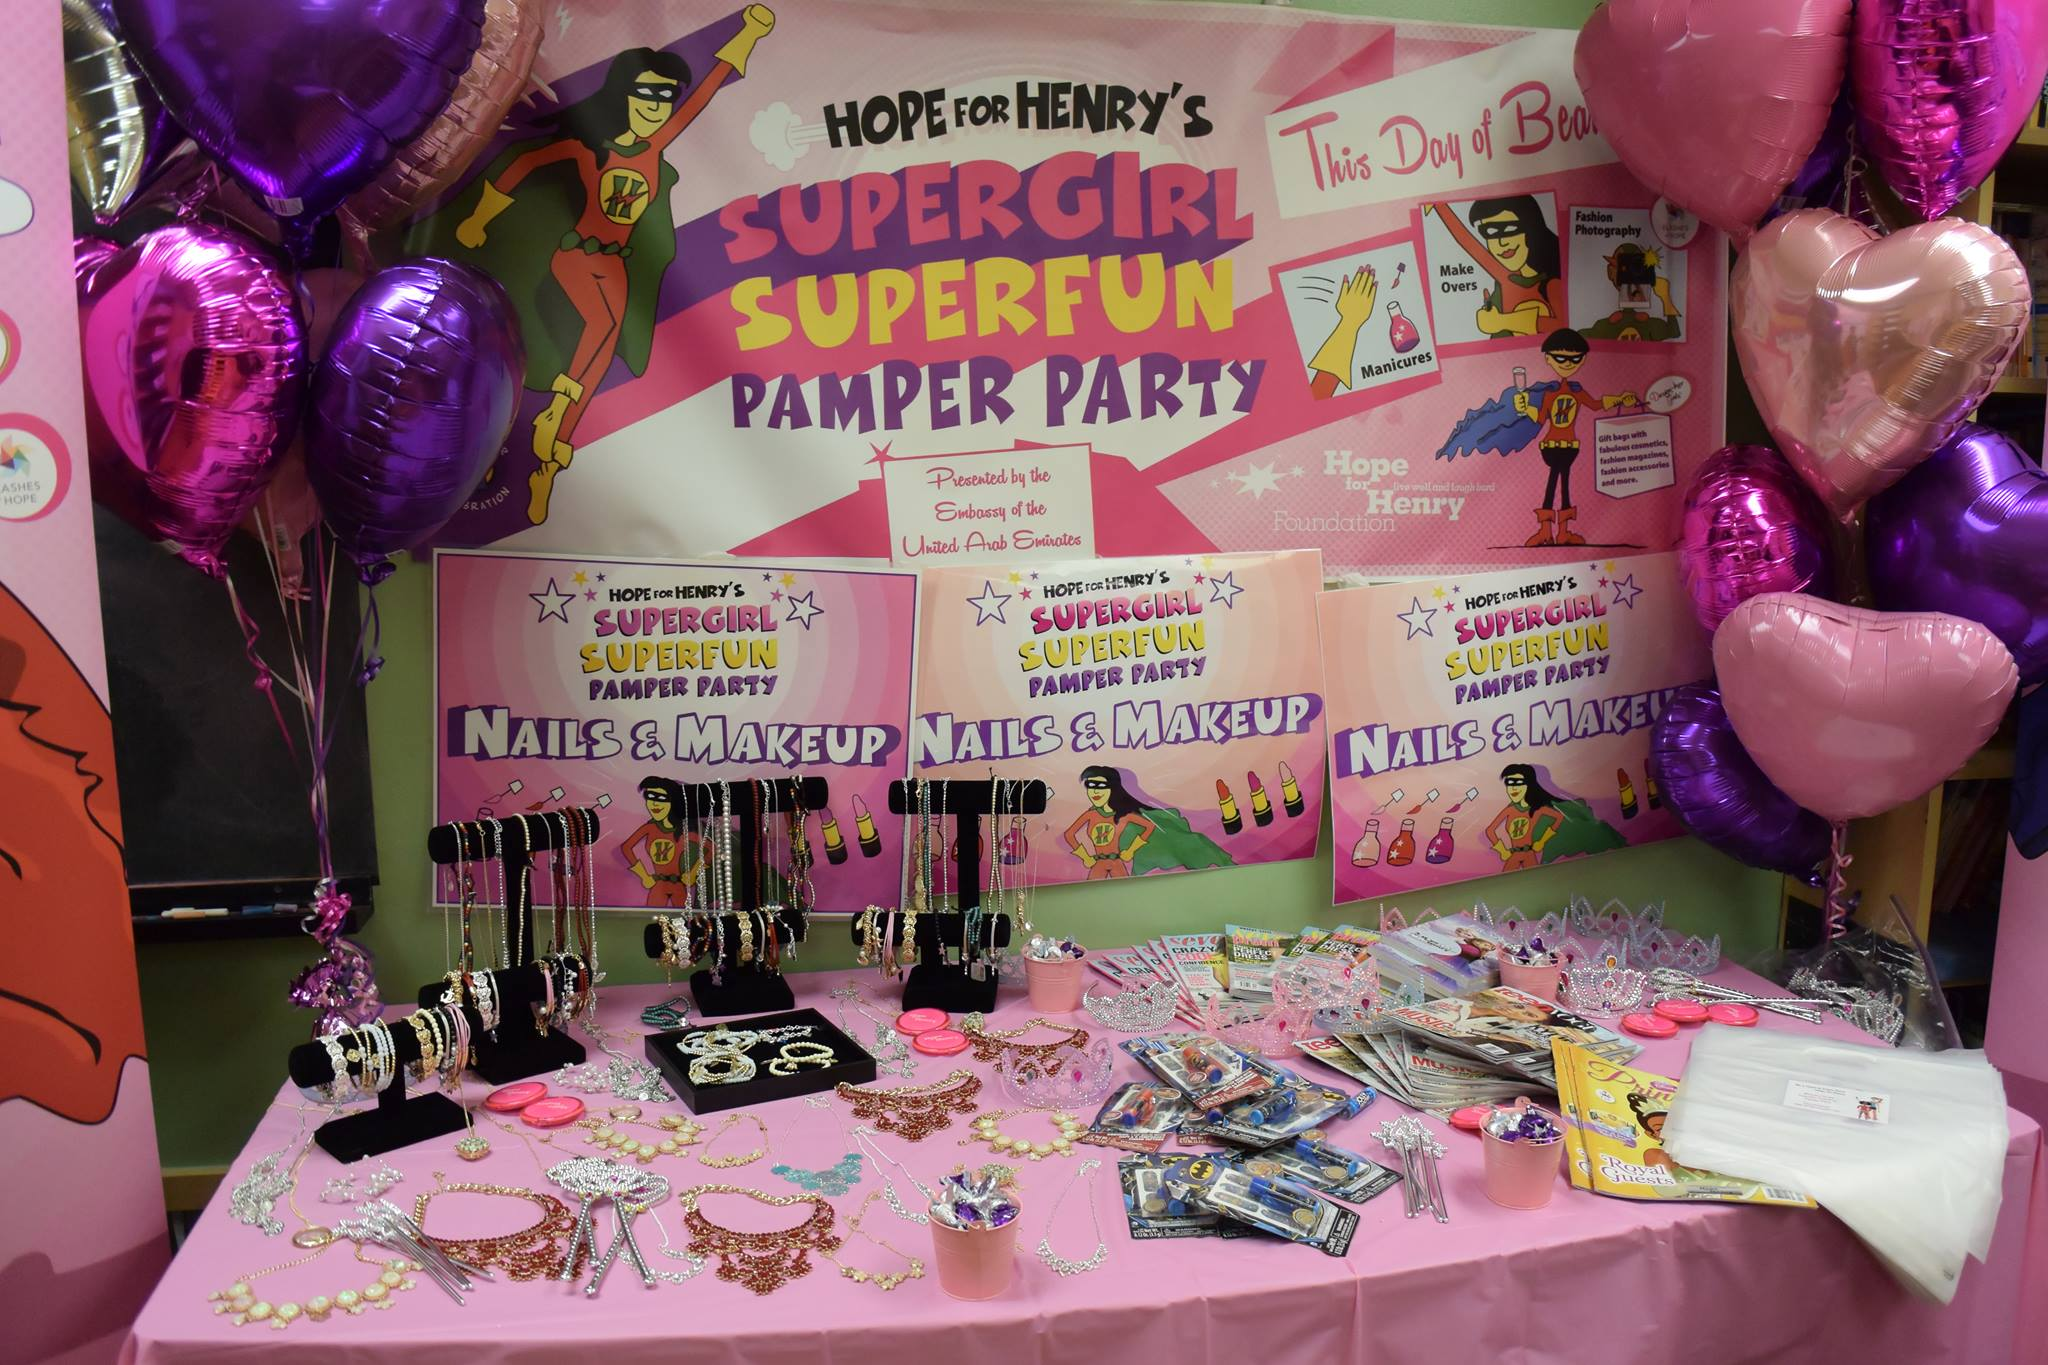 Hope for Henry's SuperGirl SuperFun Pamper Party Featured on WJLA-TV